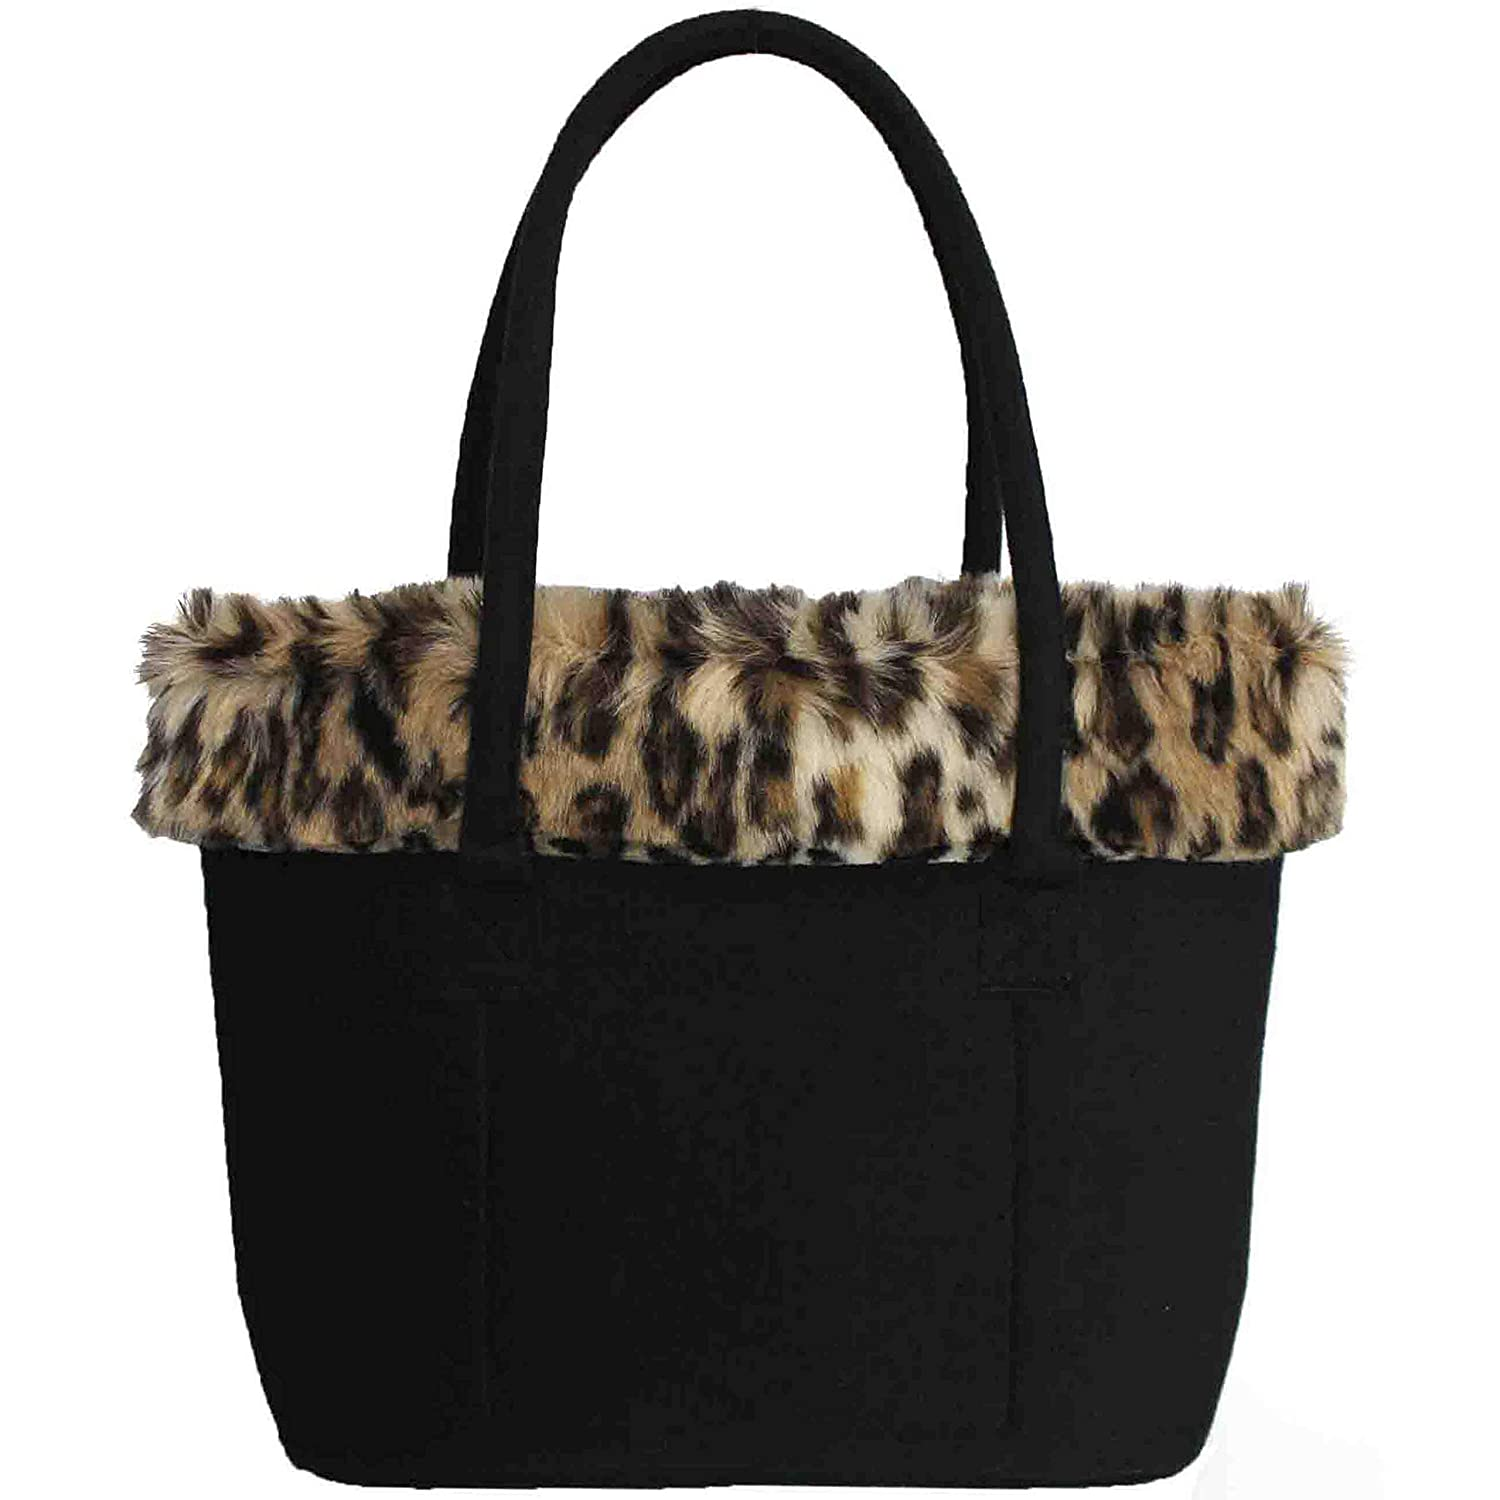 dab8f8699 FERETI Tote Bag Felt Leopard Wool Woman Animal Panther Animals Cat Bags L:  Amazon.co.uk: Shoes & Bags